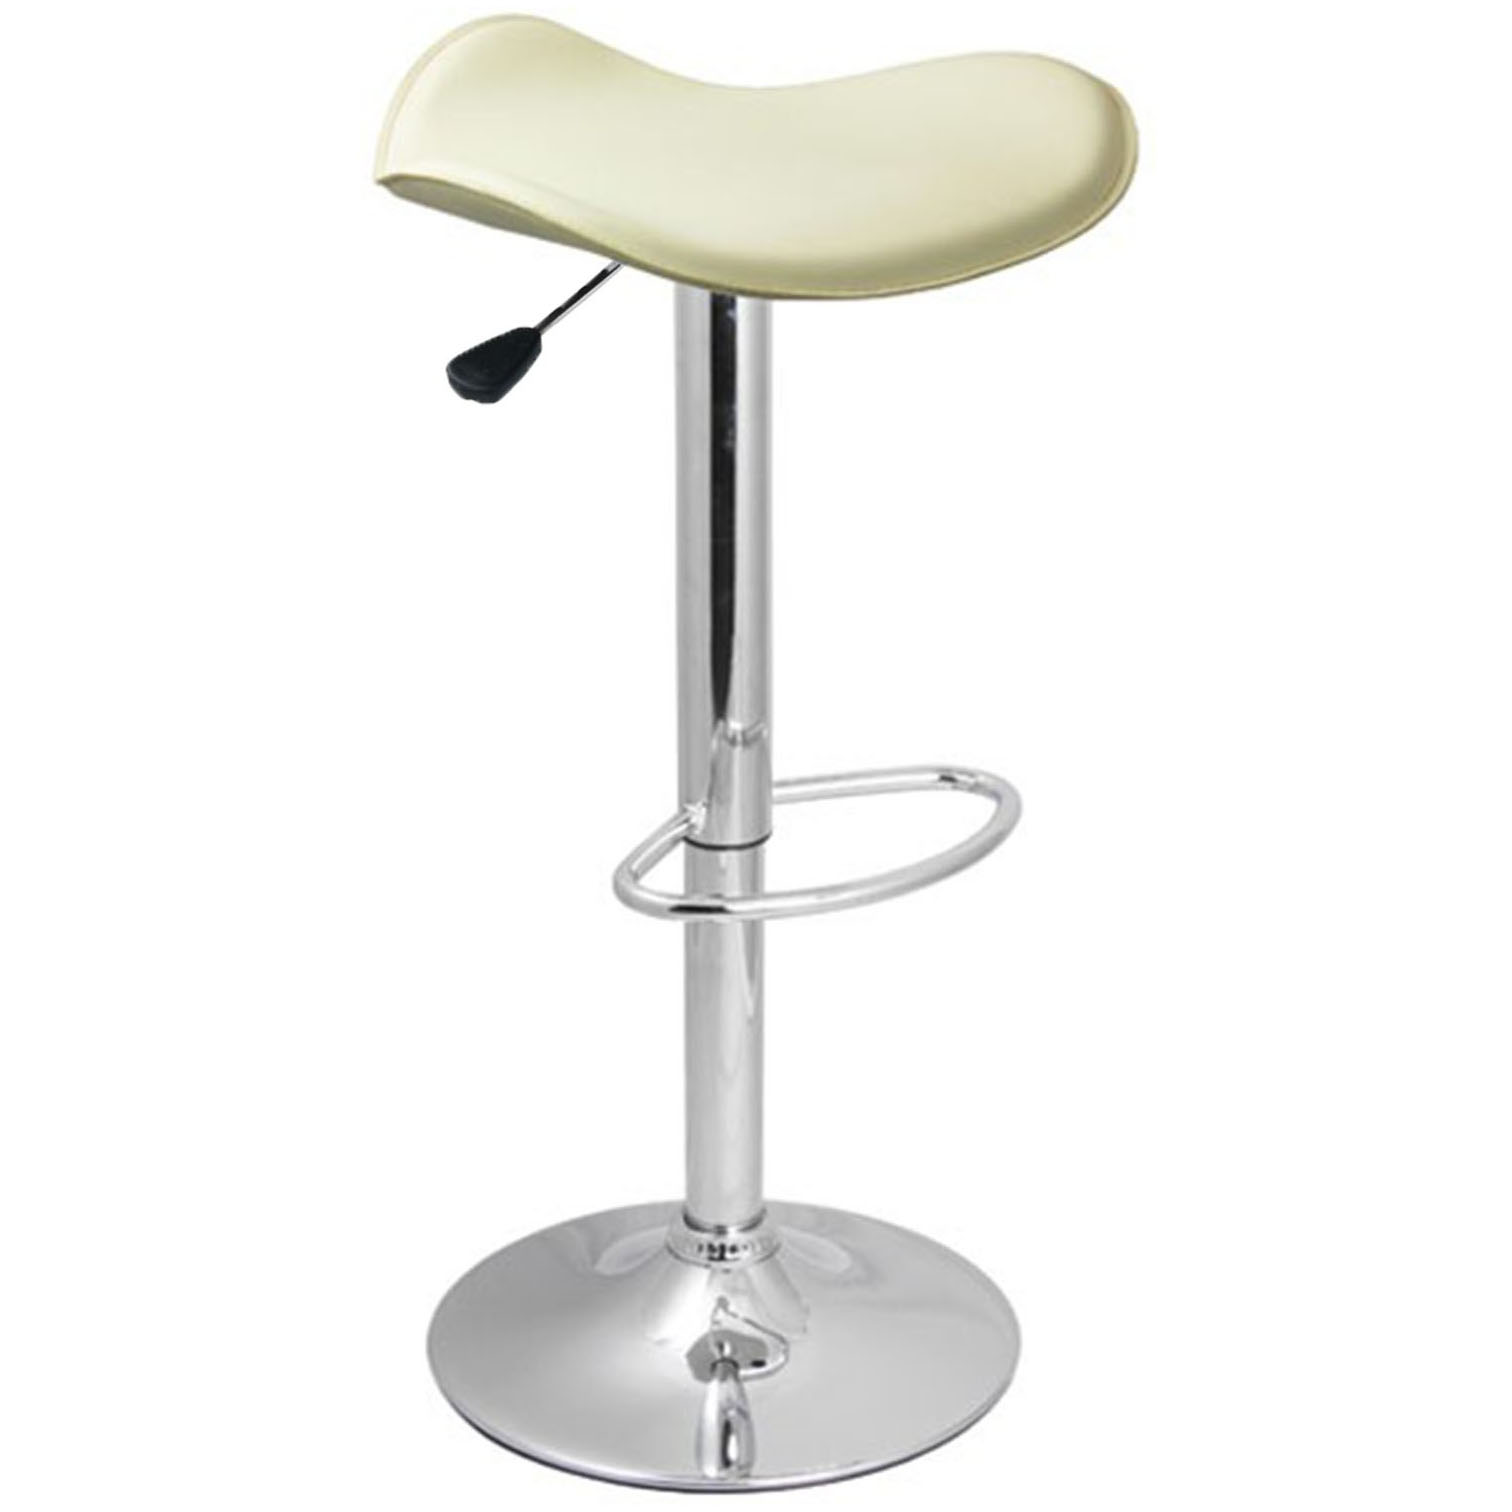 Venus Bar Stool - Cream